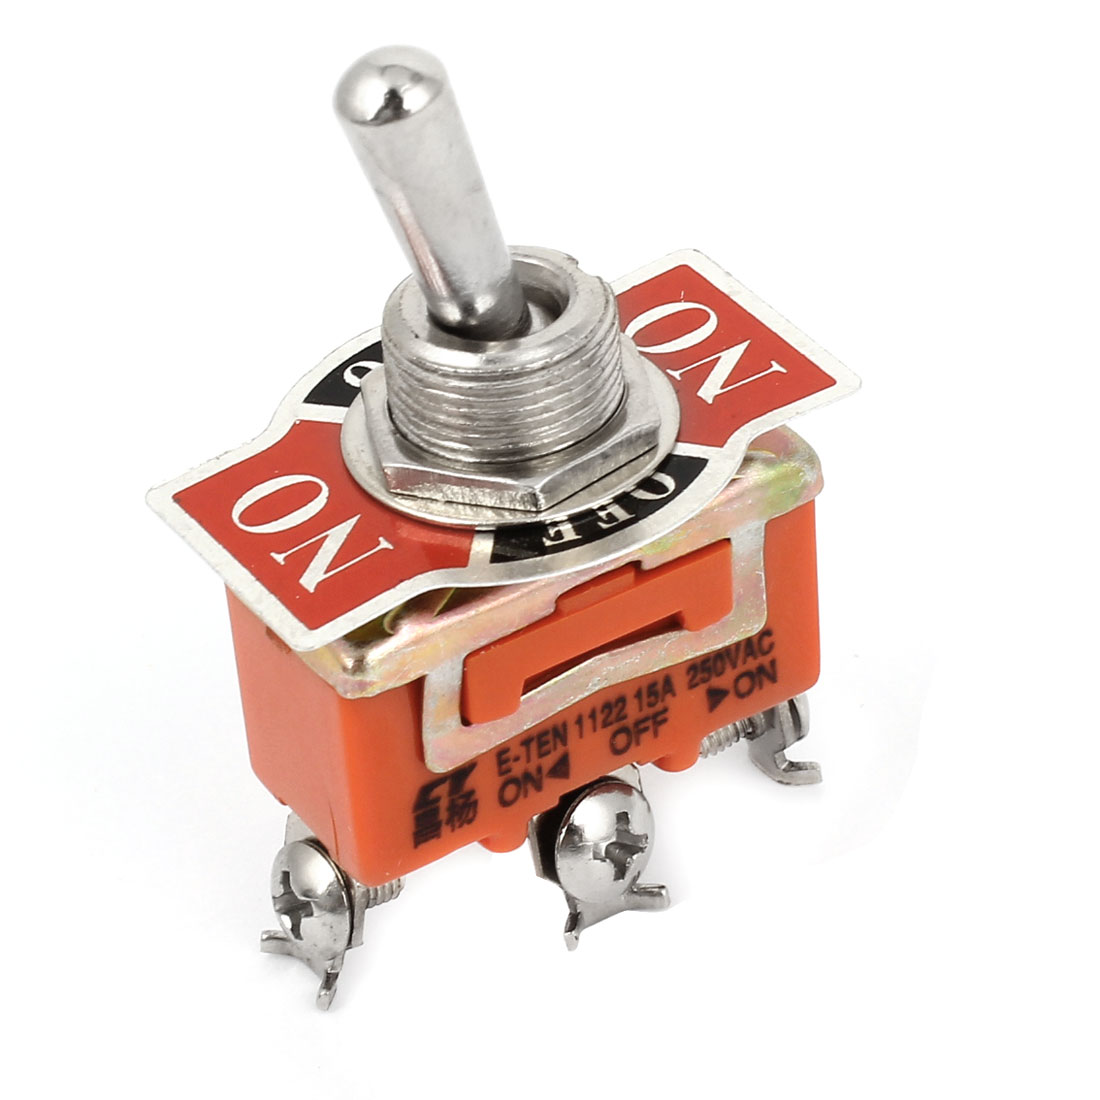 AC 250V 15A SPDT 3 Pin ON/OFF/ON Latching Control Toggle Switches